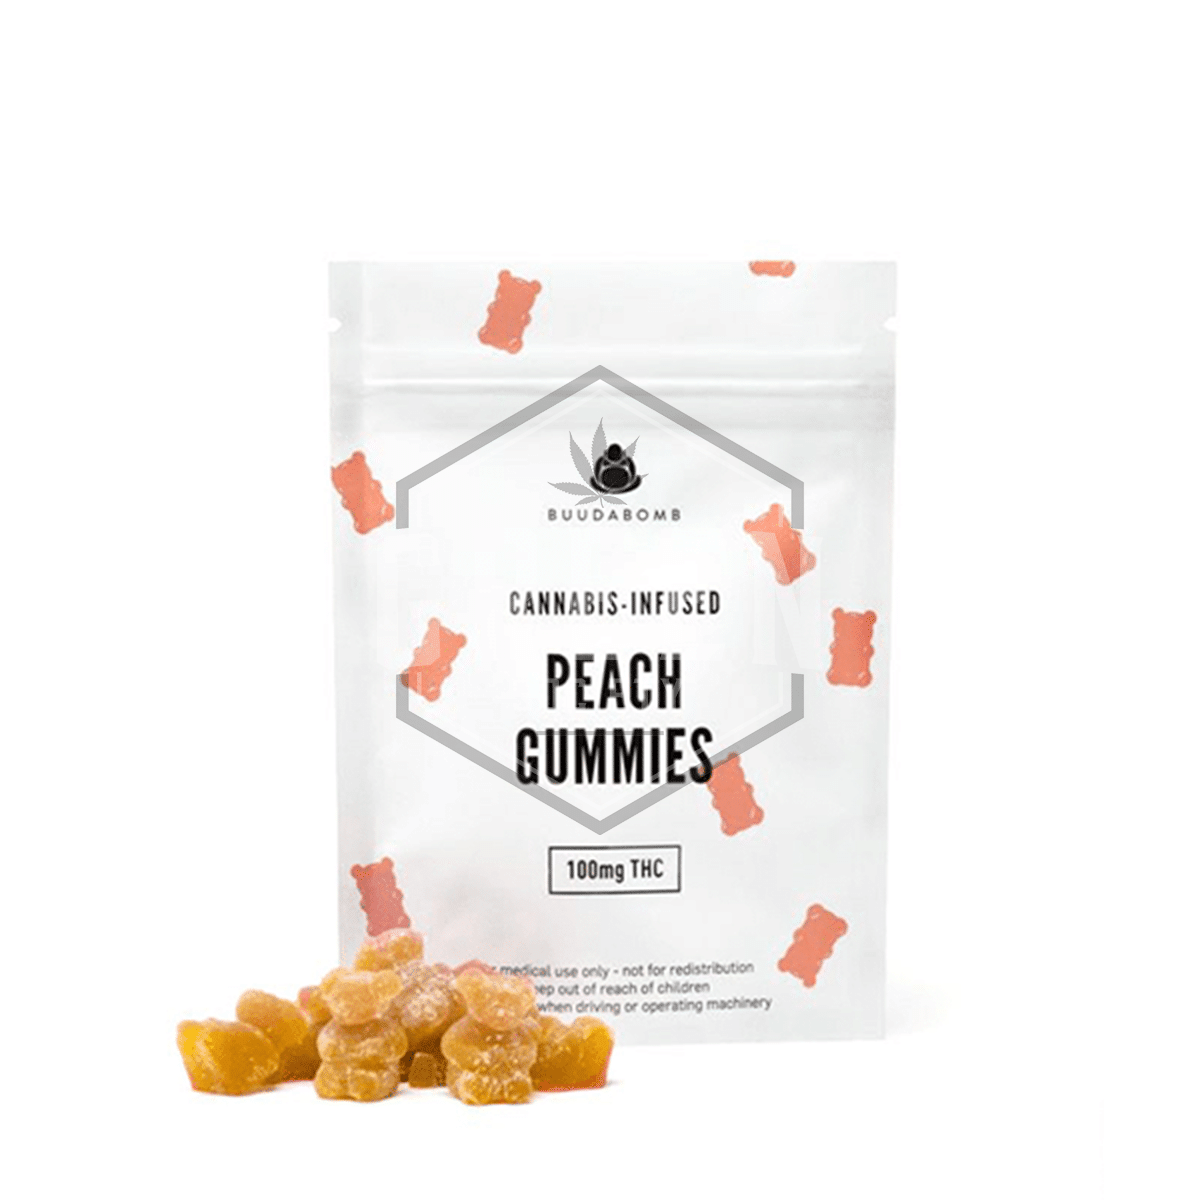 Peach Gummies by Buuda Bomb by Green Society - Image © 2018 Green Society. All Rights Reserved.